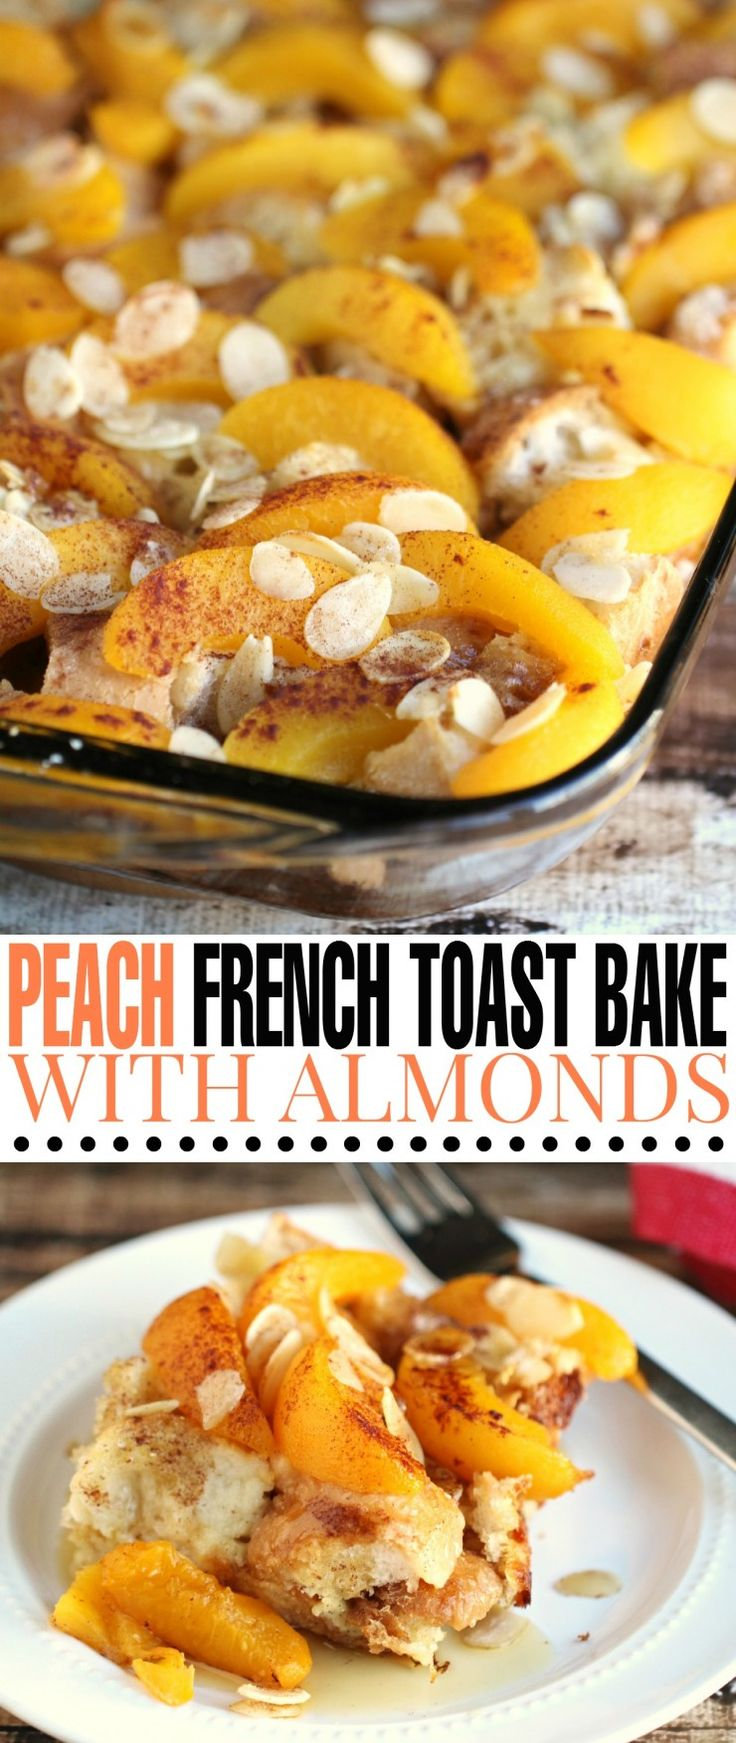 This Peach French Toast Bake with Almonds is an overnight french toast casserole. It's an easy breakfast bake you might know as a wife saver breakfast – perfect for Christmas morning brunch!